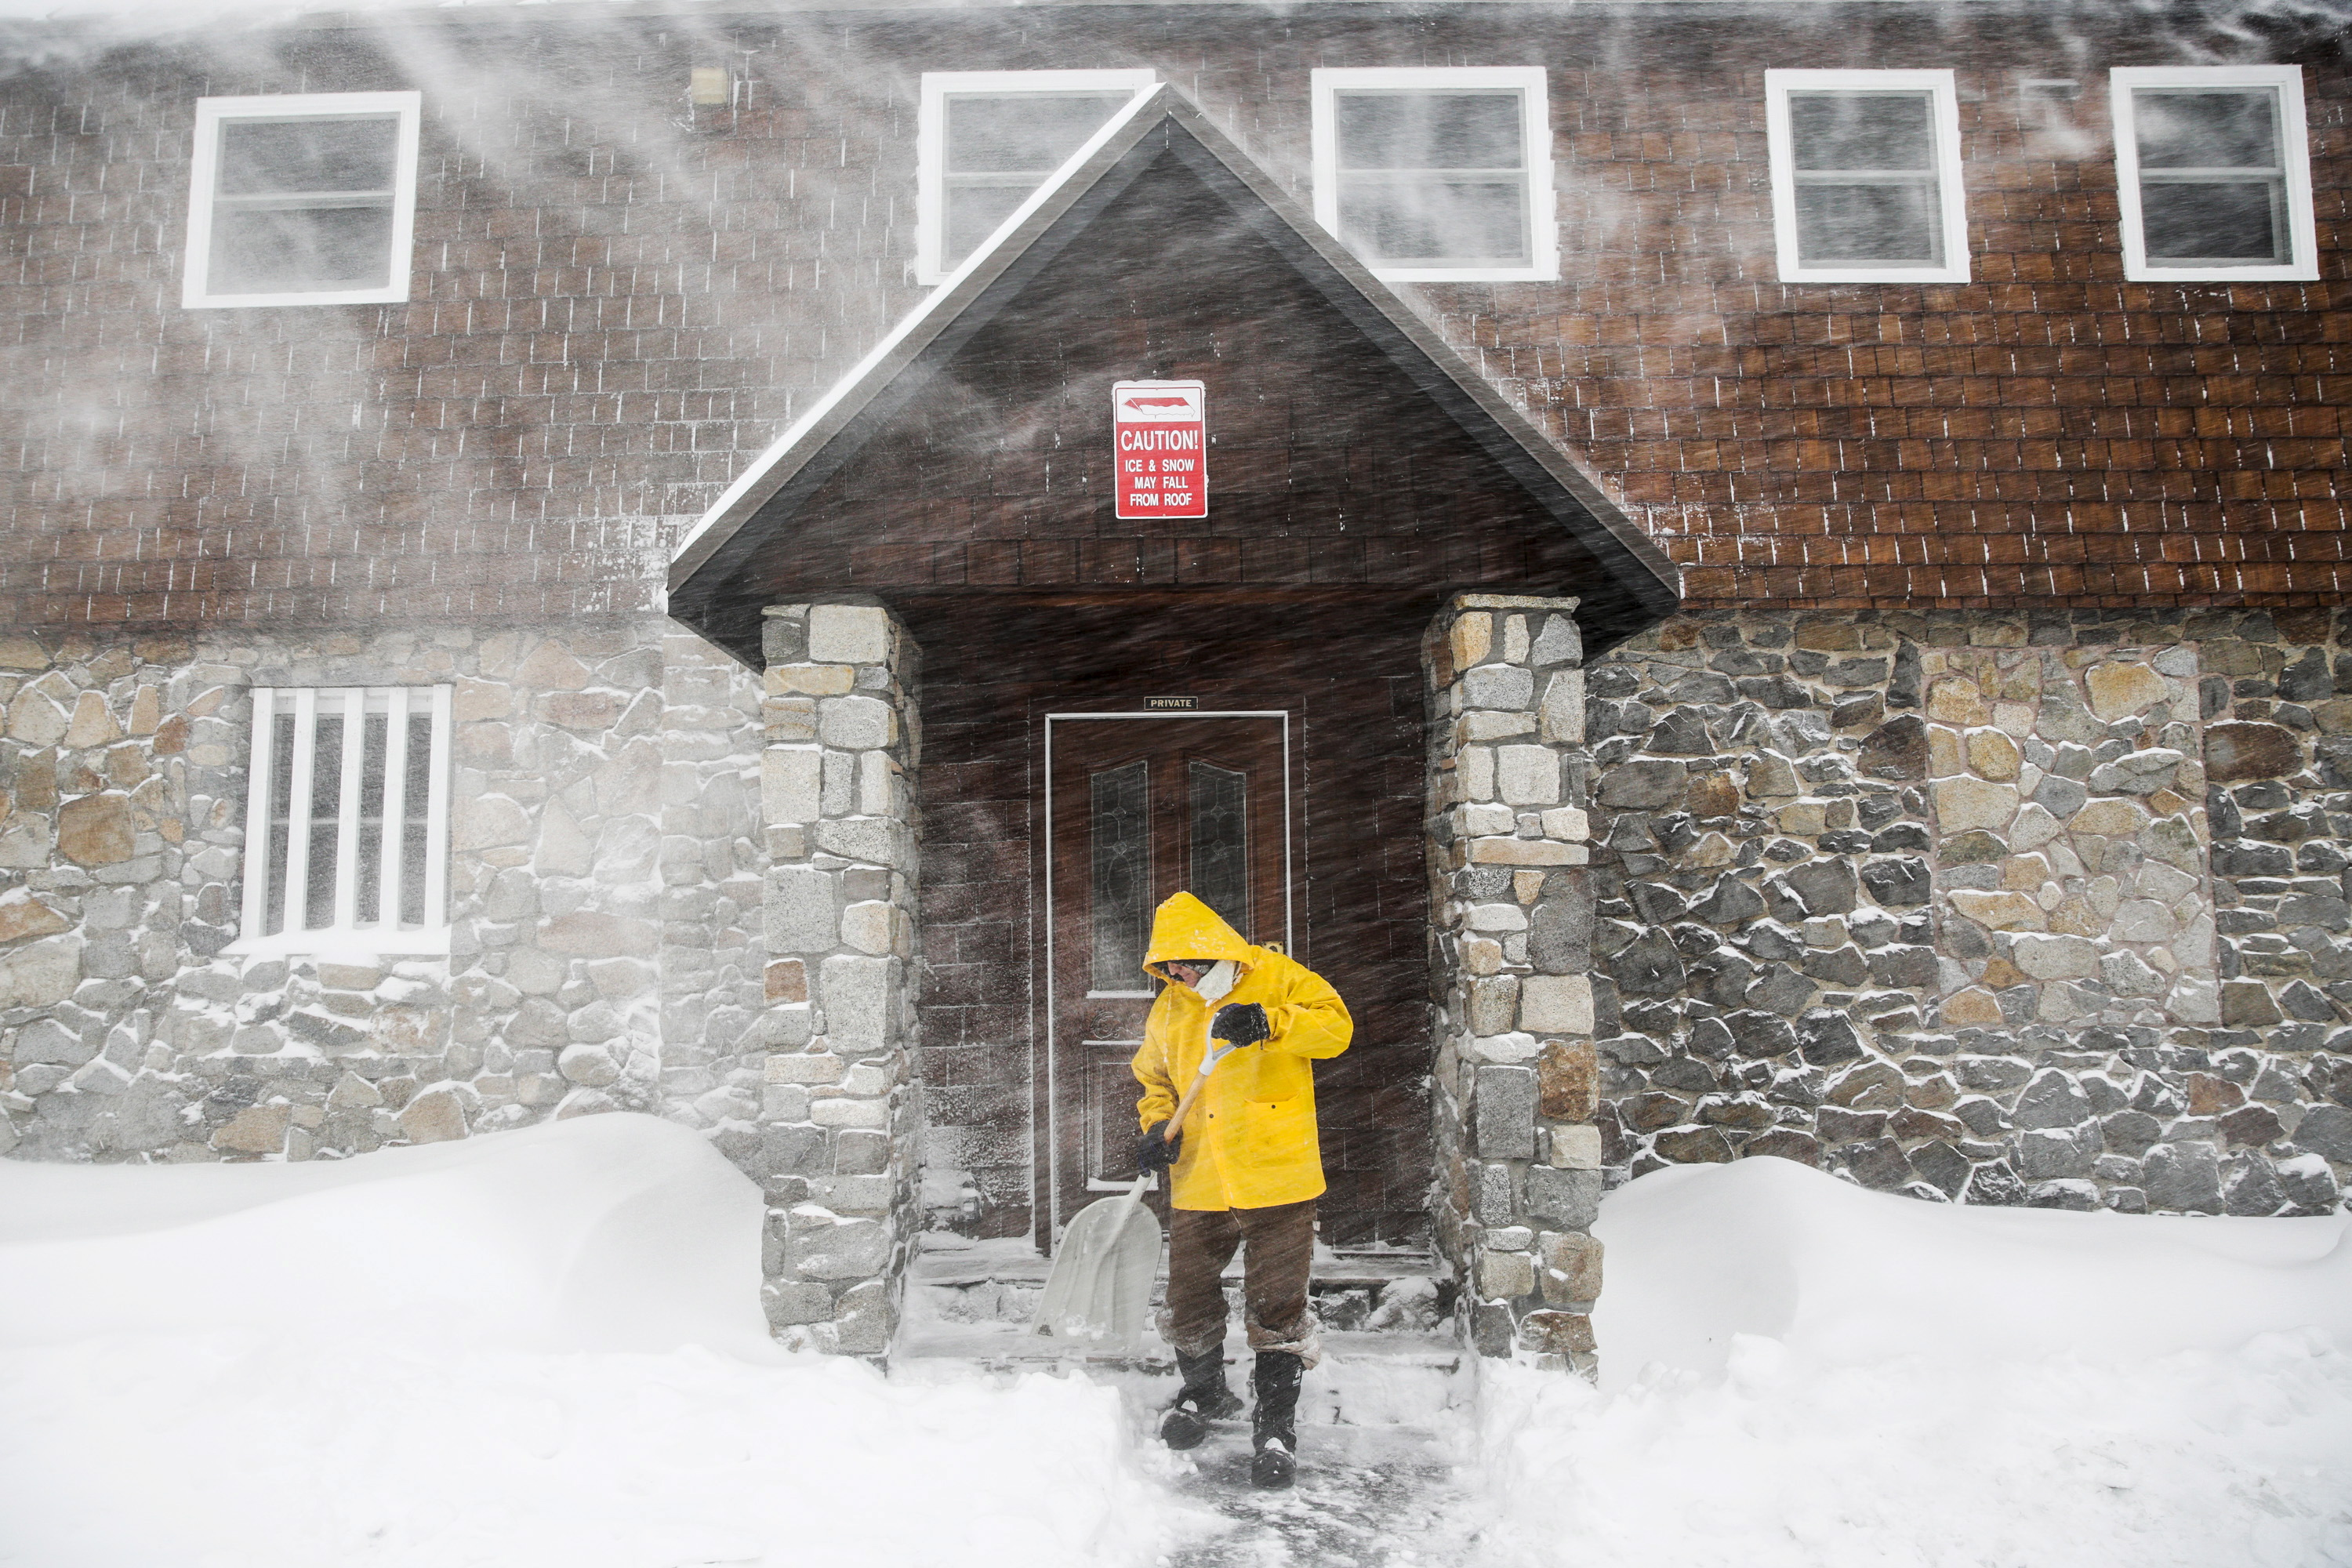 Craig Bentley shovels snow in Soda Springs, California, Nov. 24, 2015